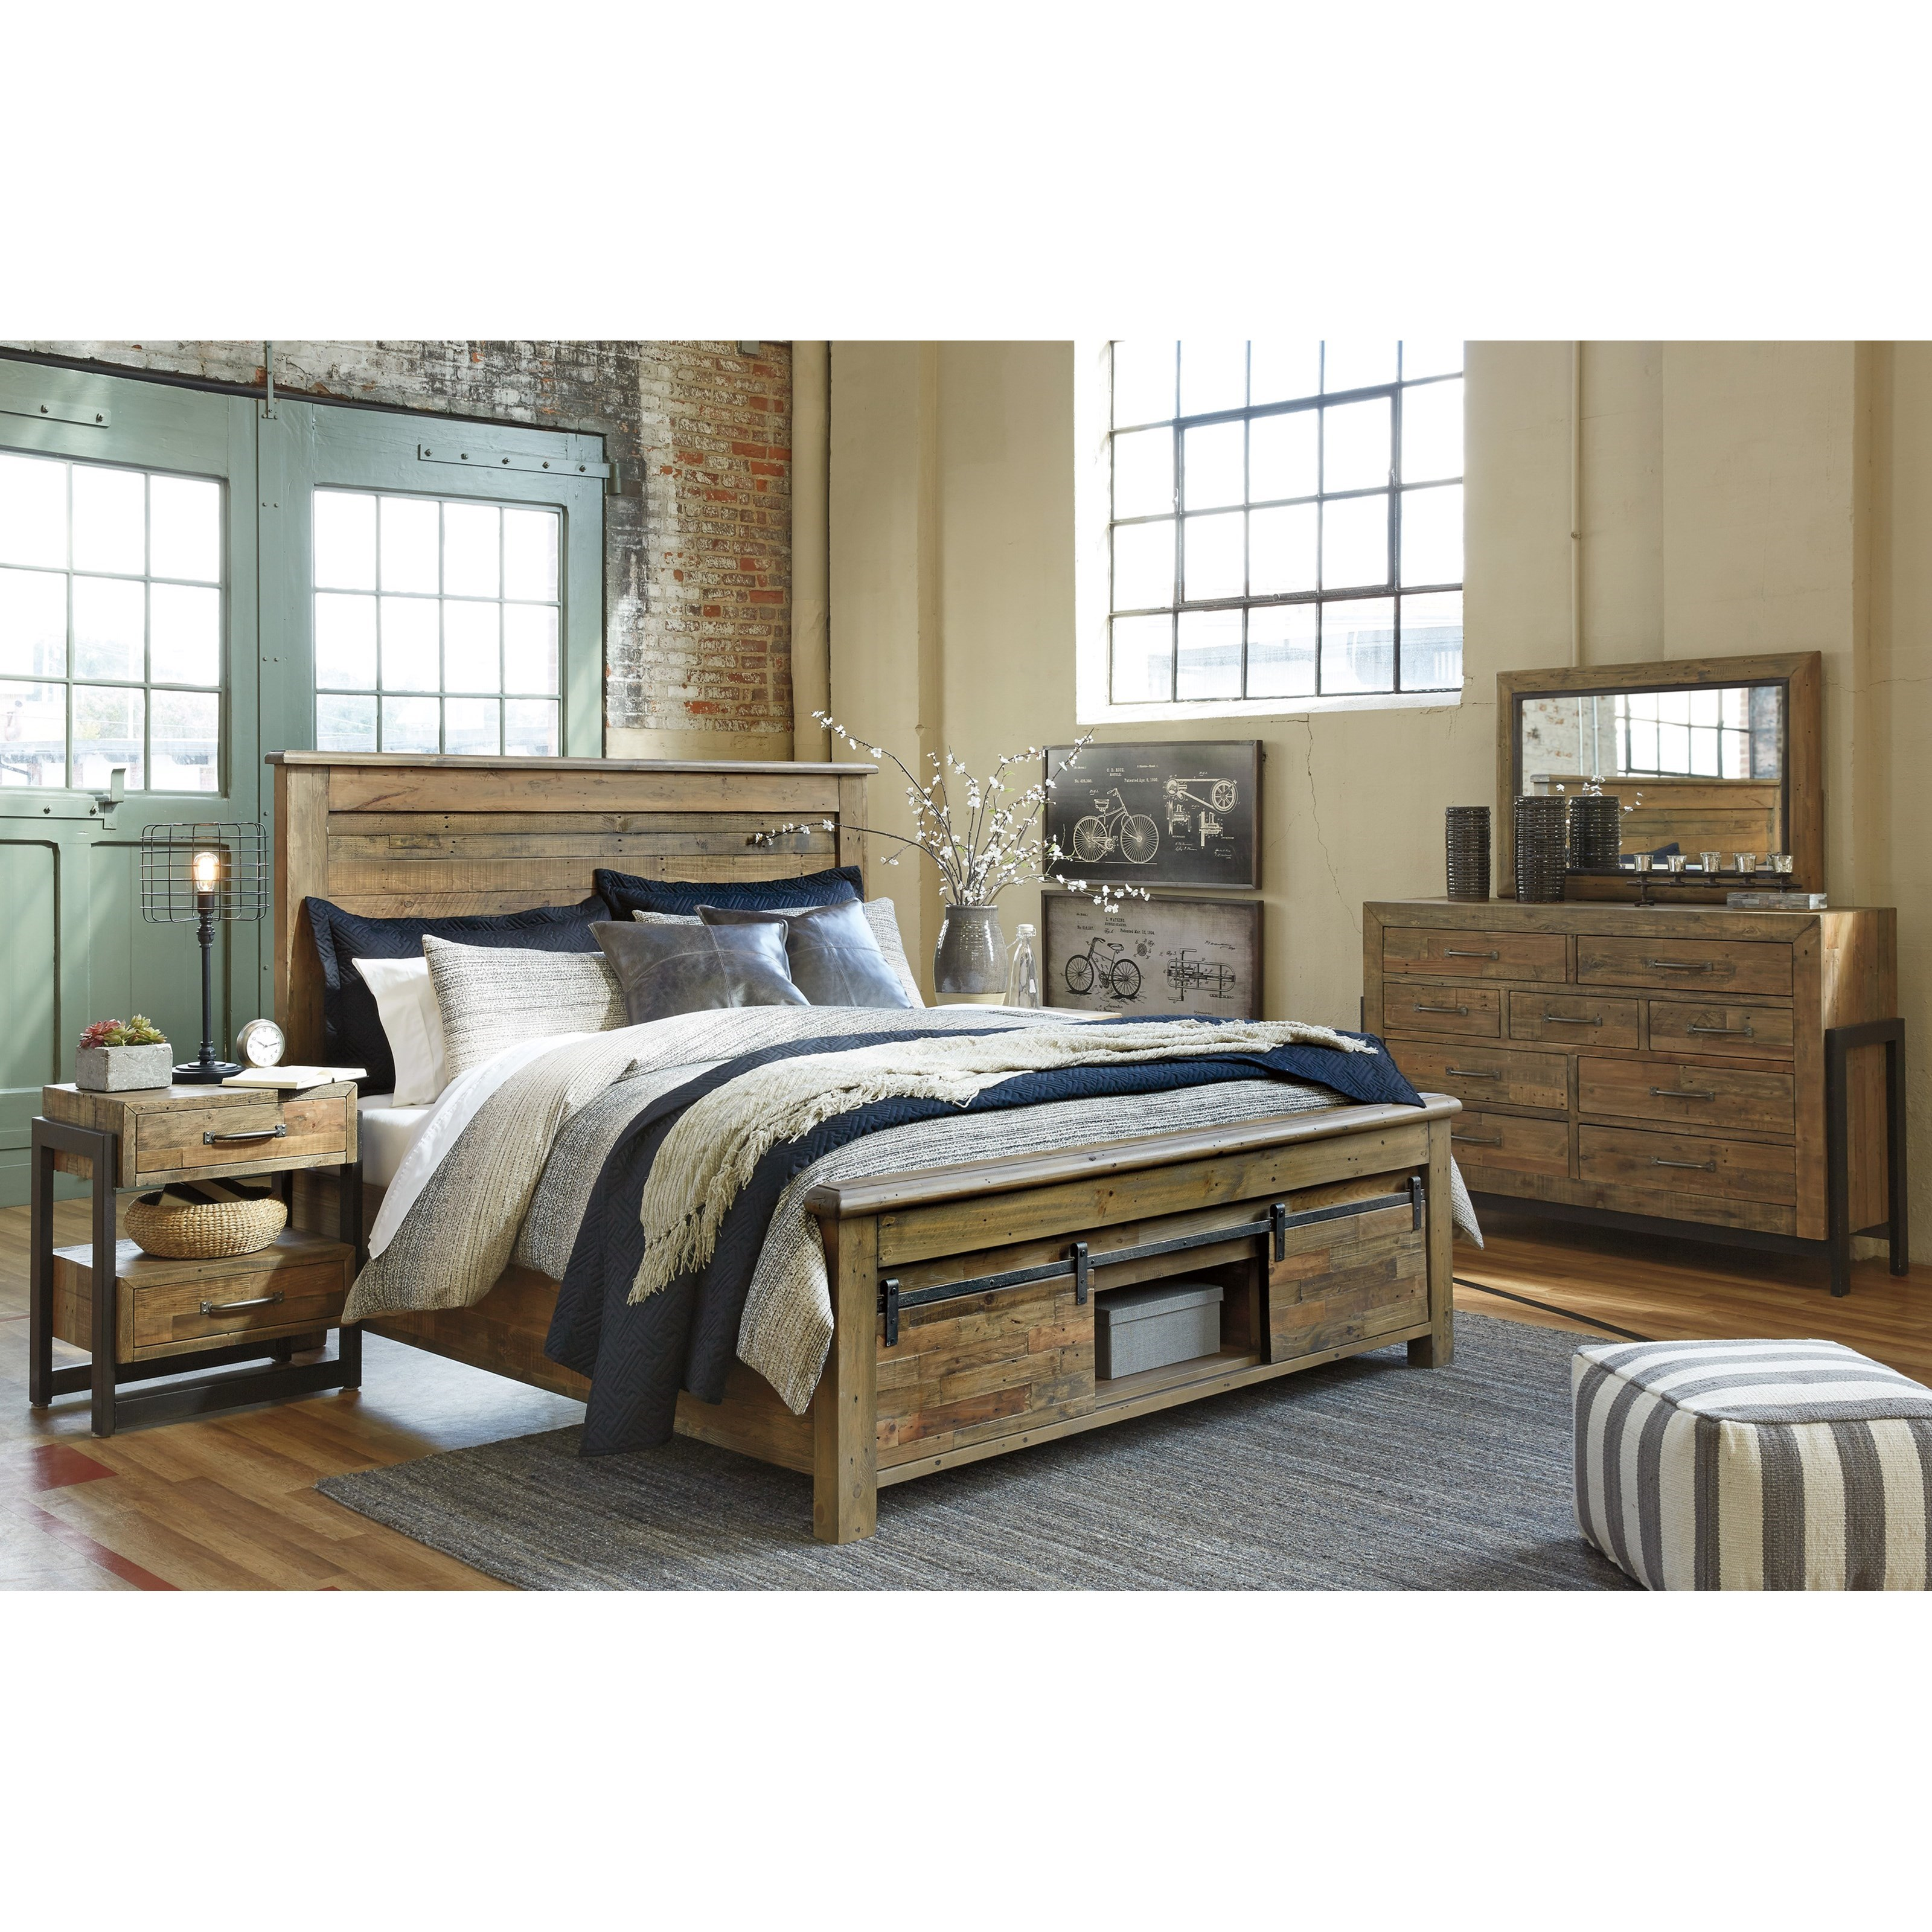 ashley signature design sommerford queen bedroom group dunk bright furniture bedroom groups. Black Bedroom Furniture Sets. Home Design Ideas